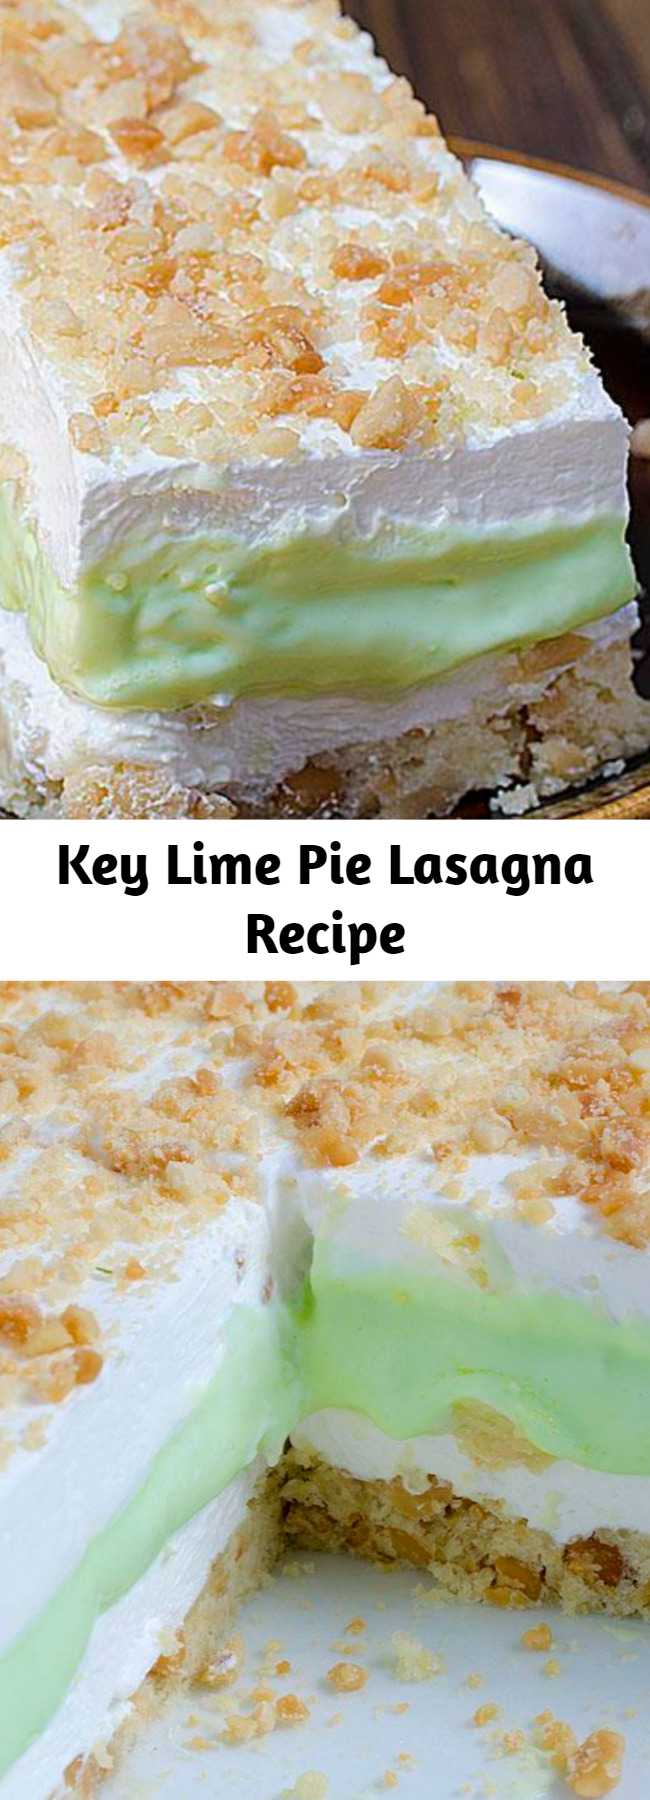 Key Lime Pie Lasagna Recipe - Key Lime Pie Lasagna is cool, light and creamy summer dessert with sweet and tart layers of yumminess.